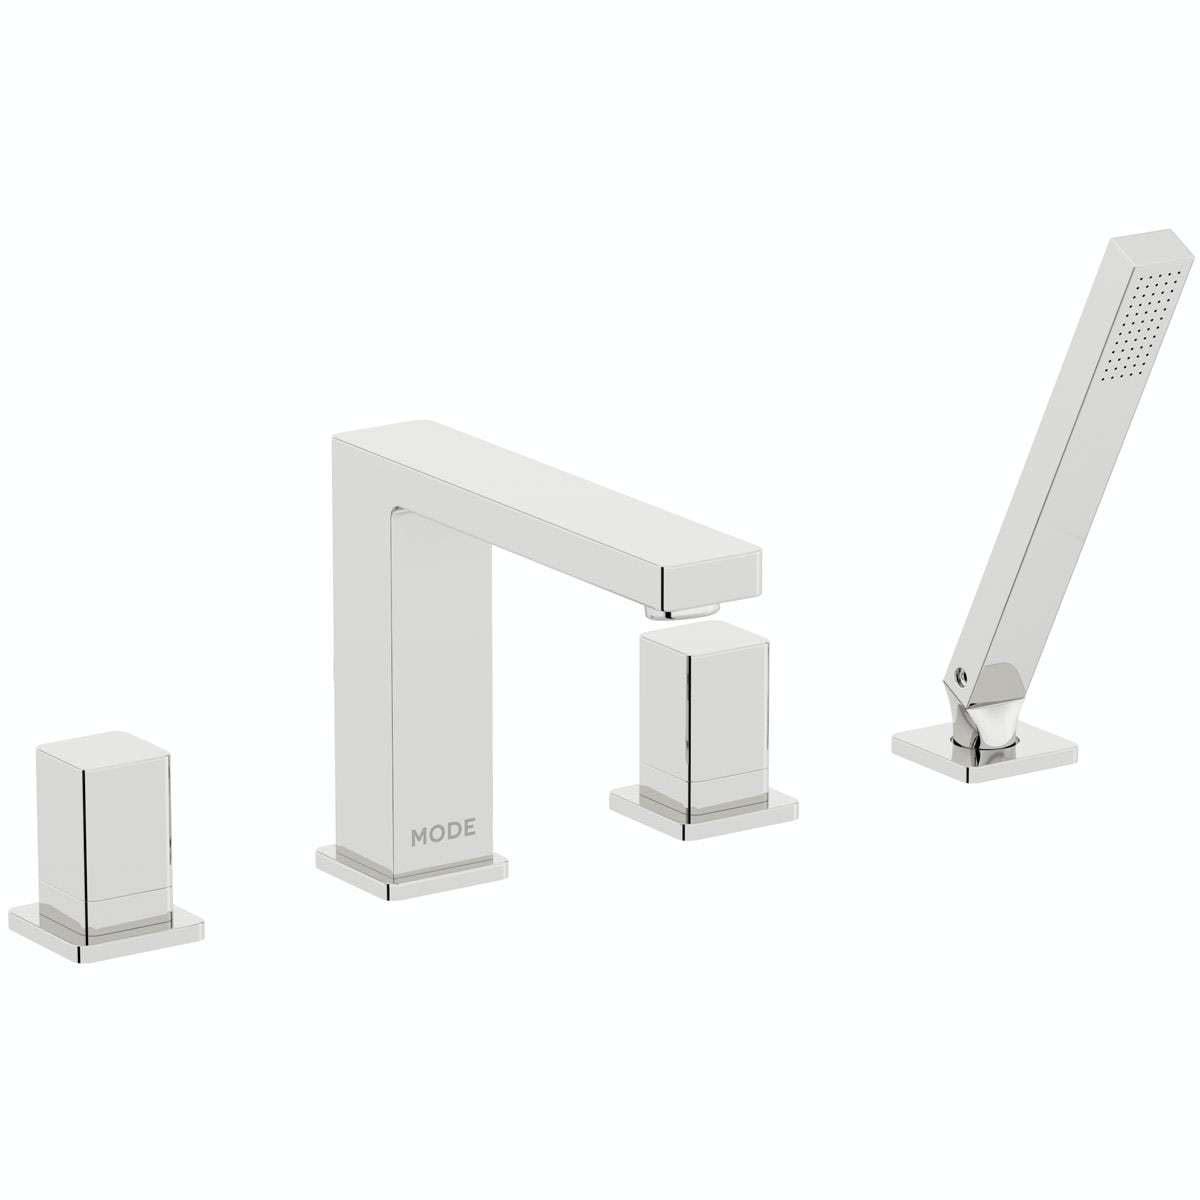 Mode Dixon 4 hole bath shower mixer tap